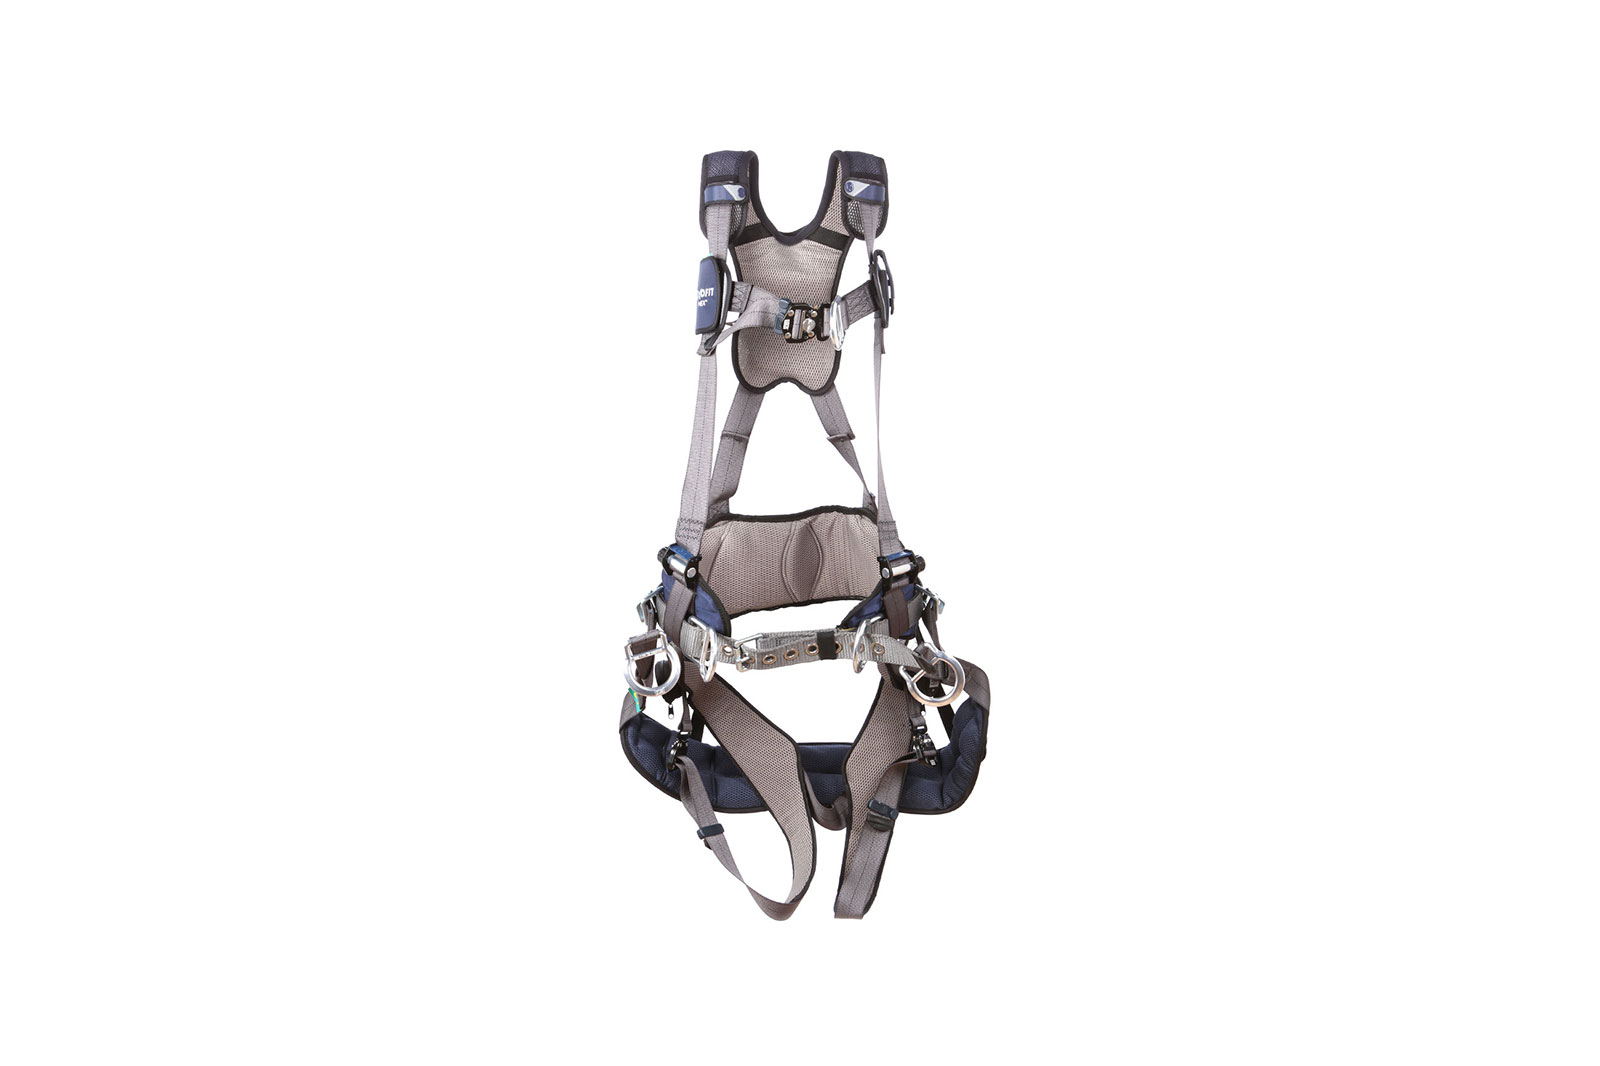 Dbi Tower Body Belt Amp Harness Combo With Hard Seat